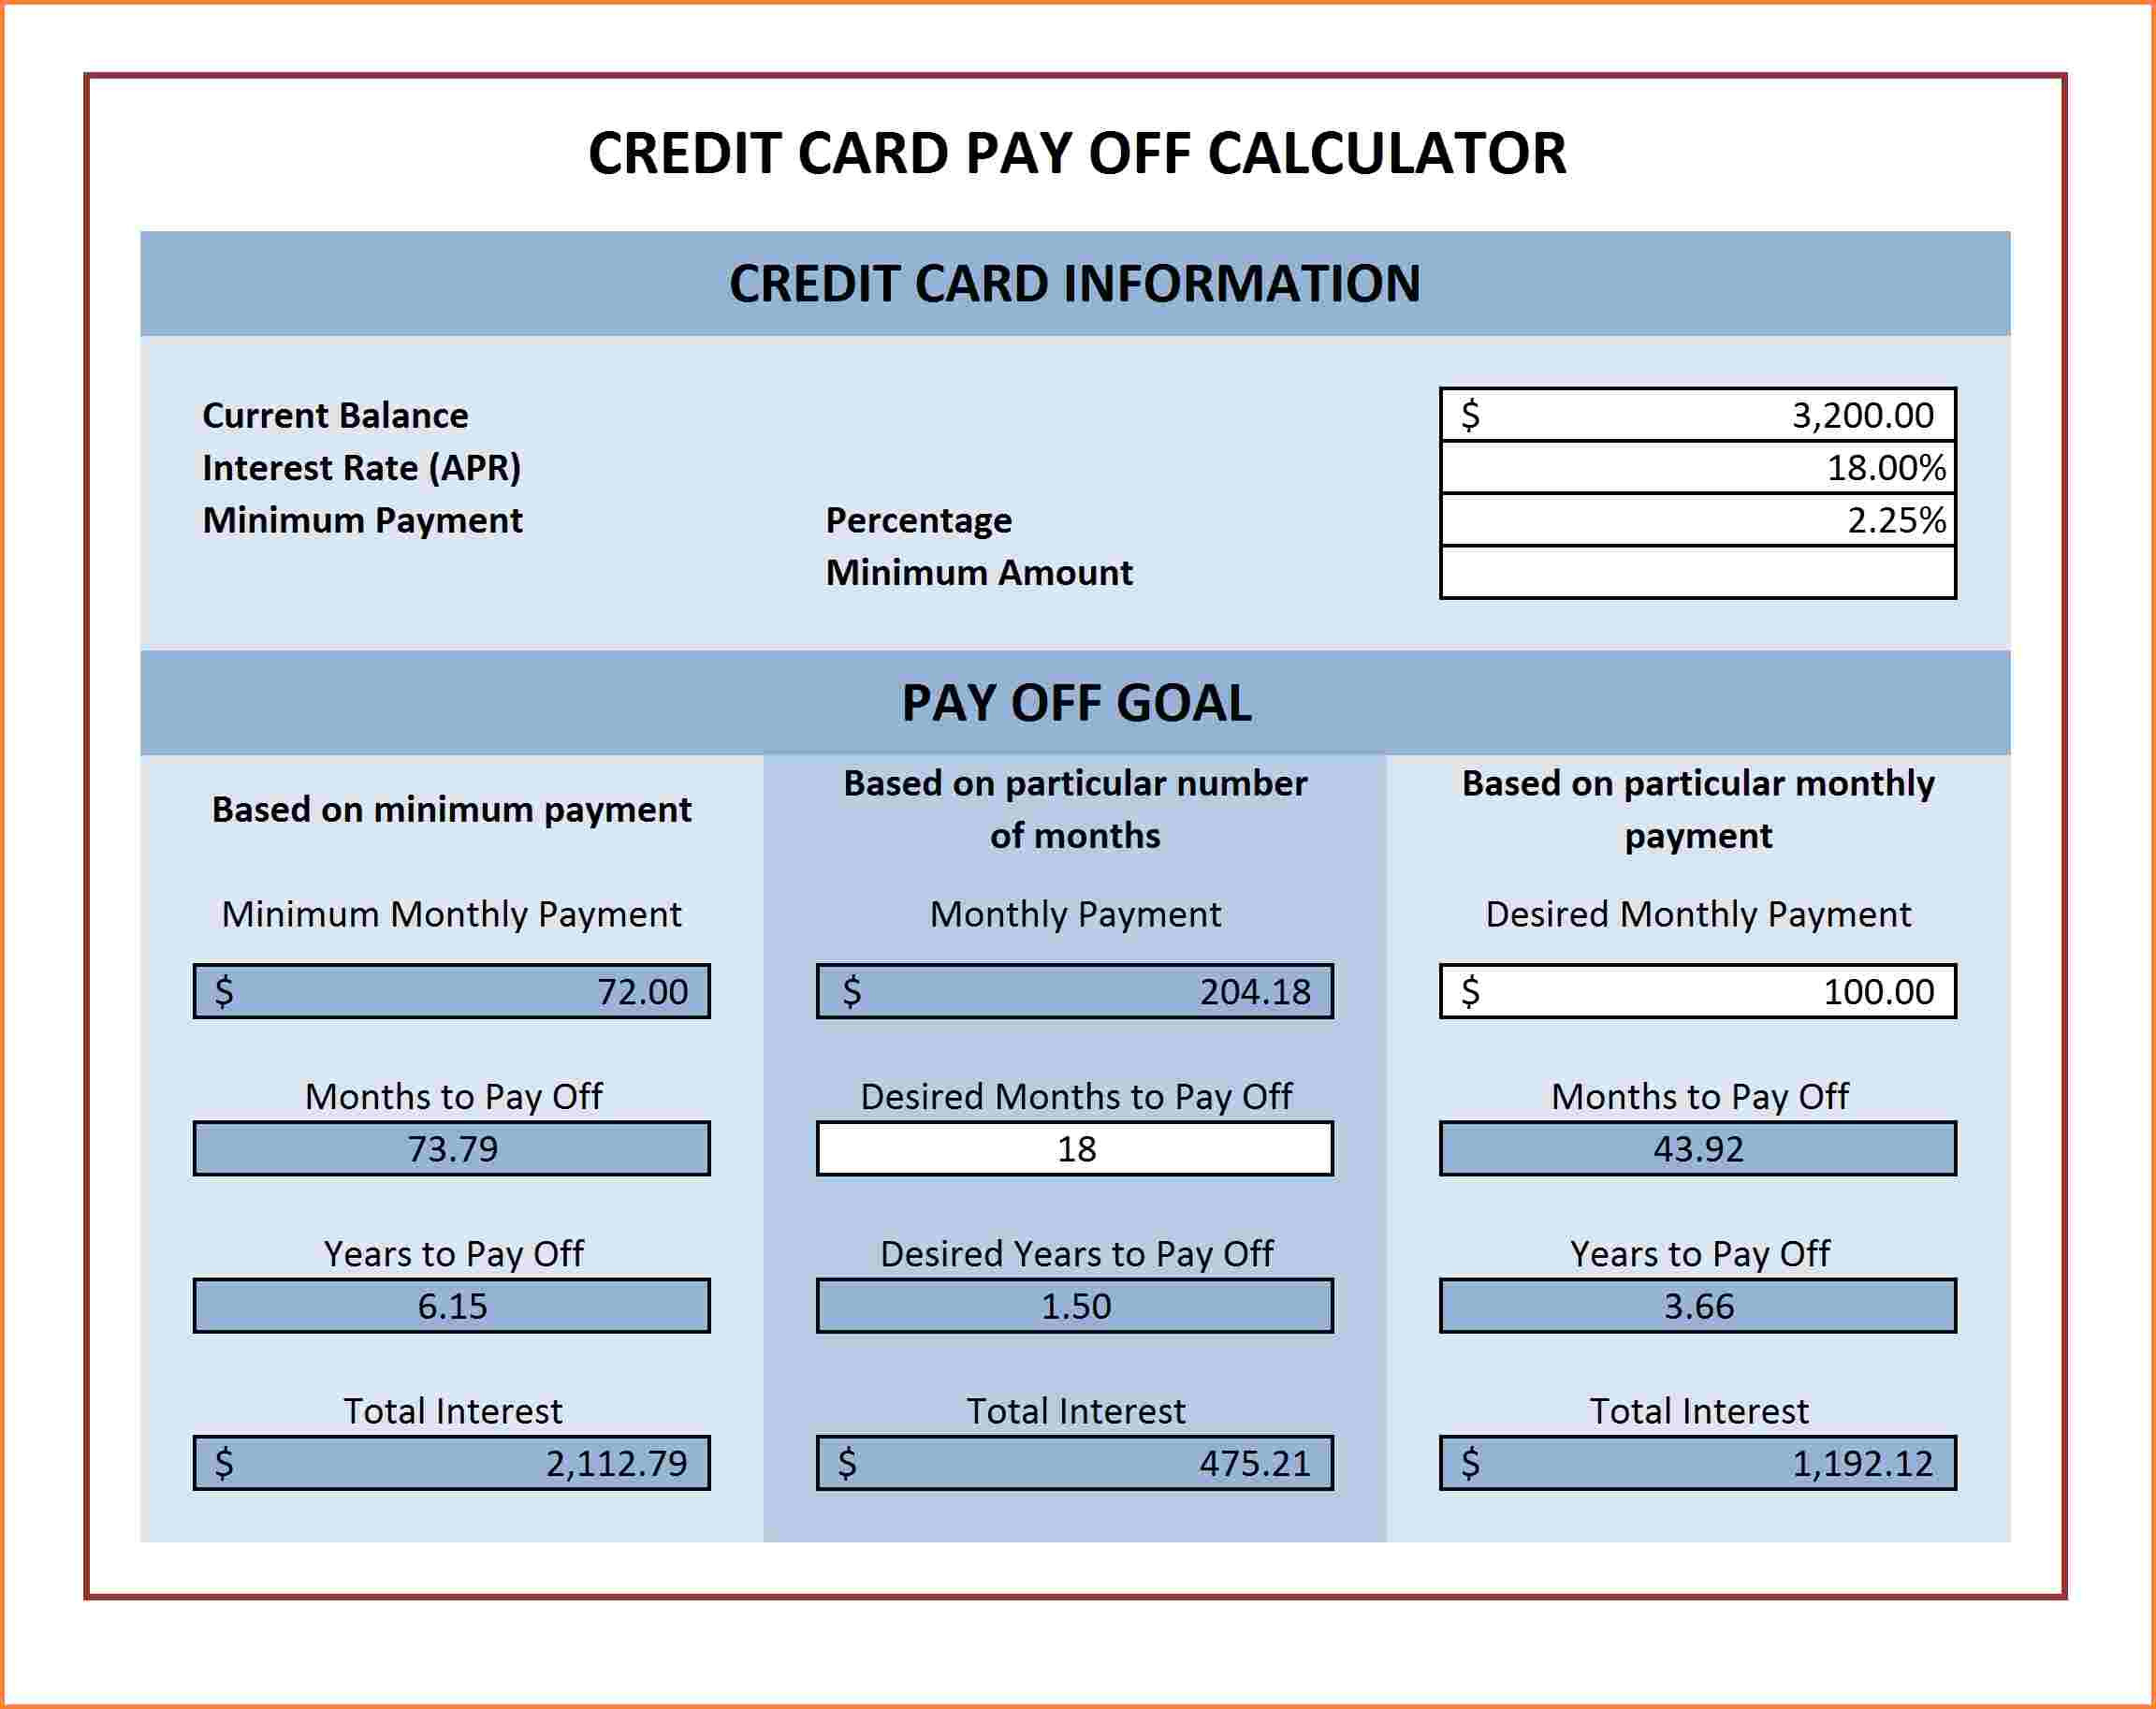 Multiple Credit Card Payoff Calculator Spreadsheet Within Multiple Credit Card Payoff Calculator Spreadsheet  My Spreadsheet